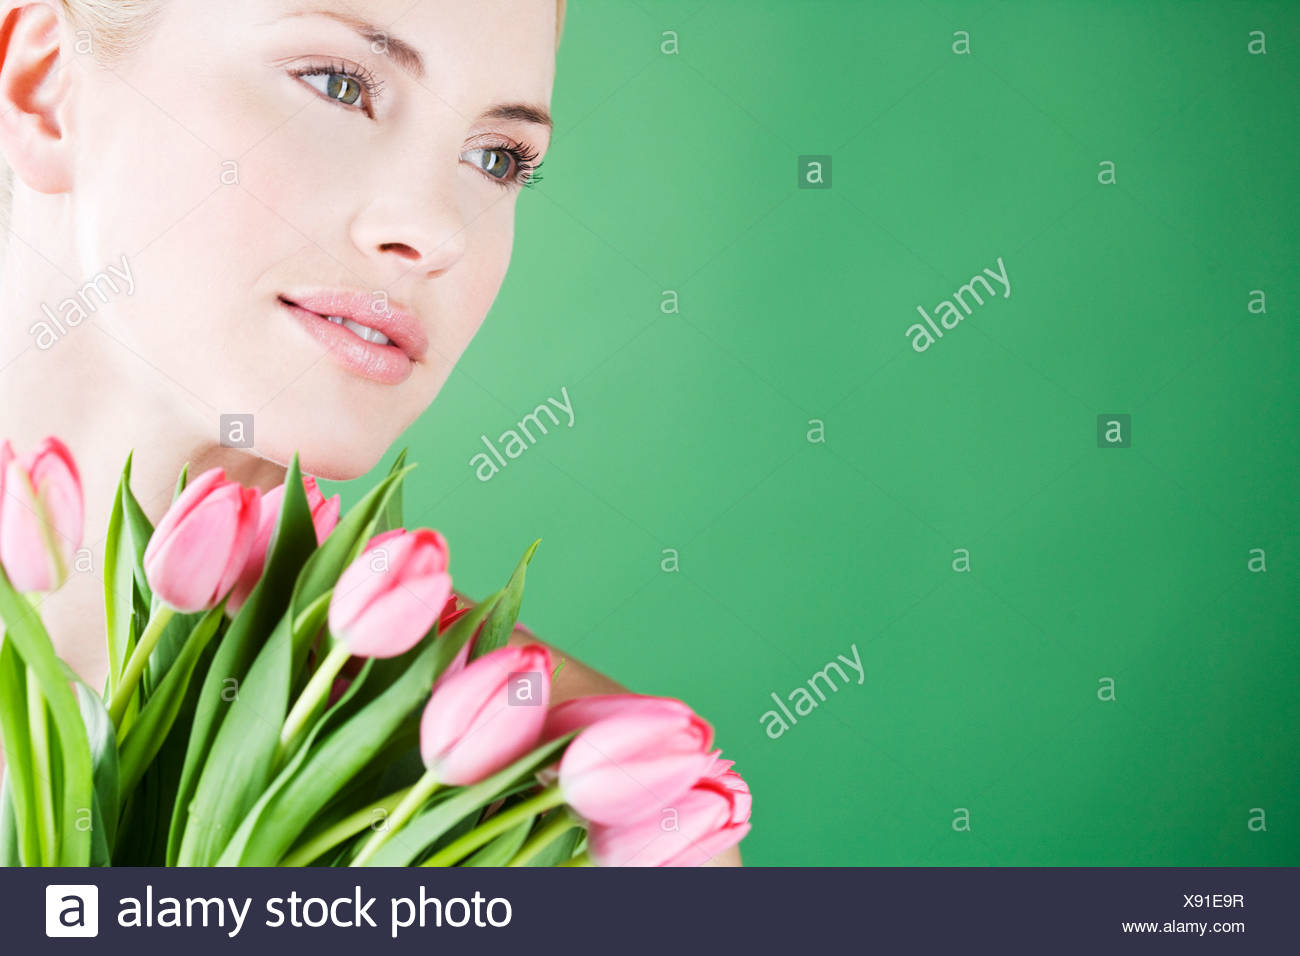 A young woman holding a bunch of pink tulips - Stock Image